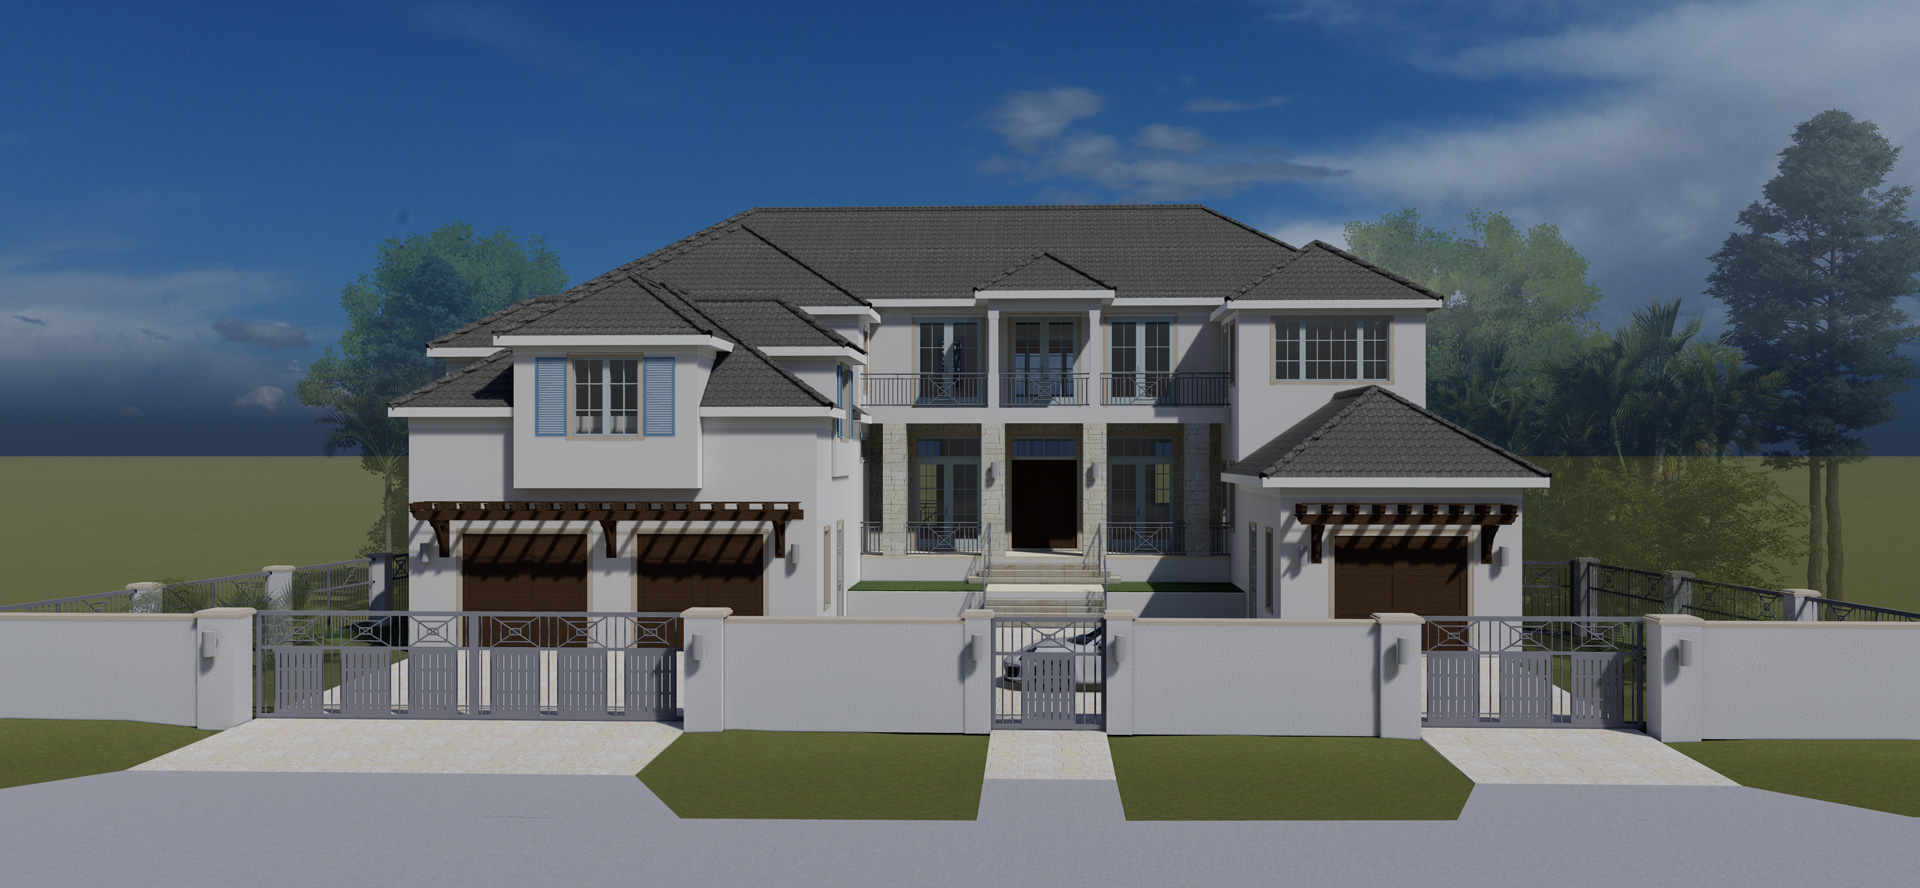 House render with white walls and dark roof